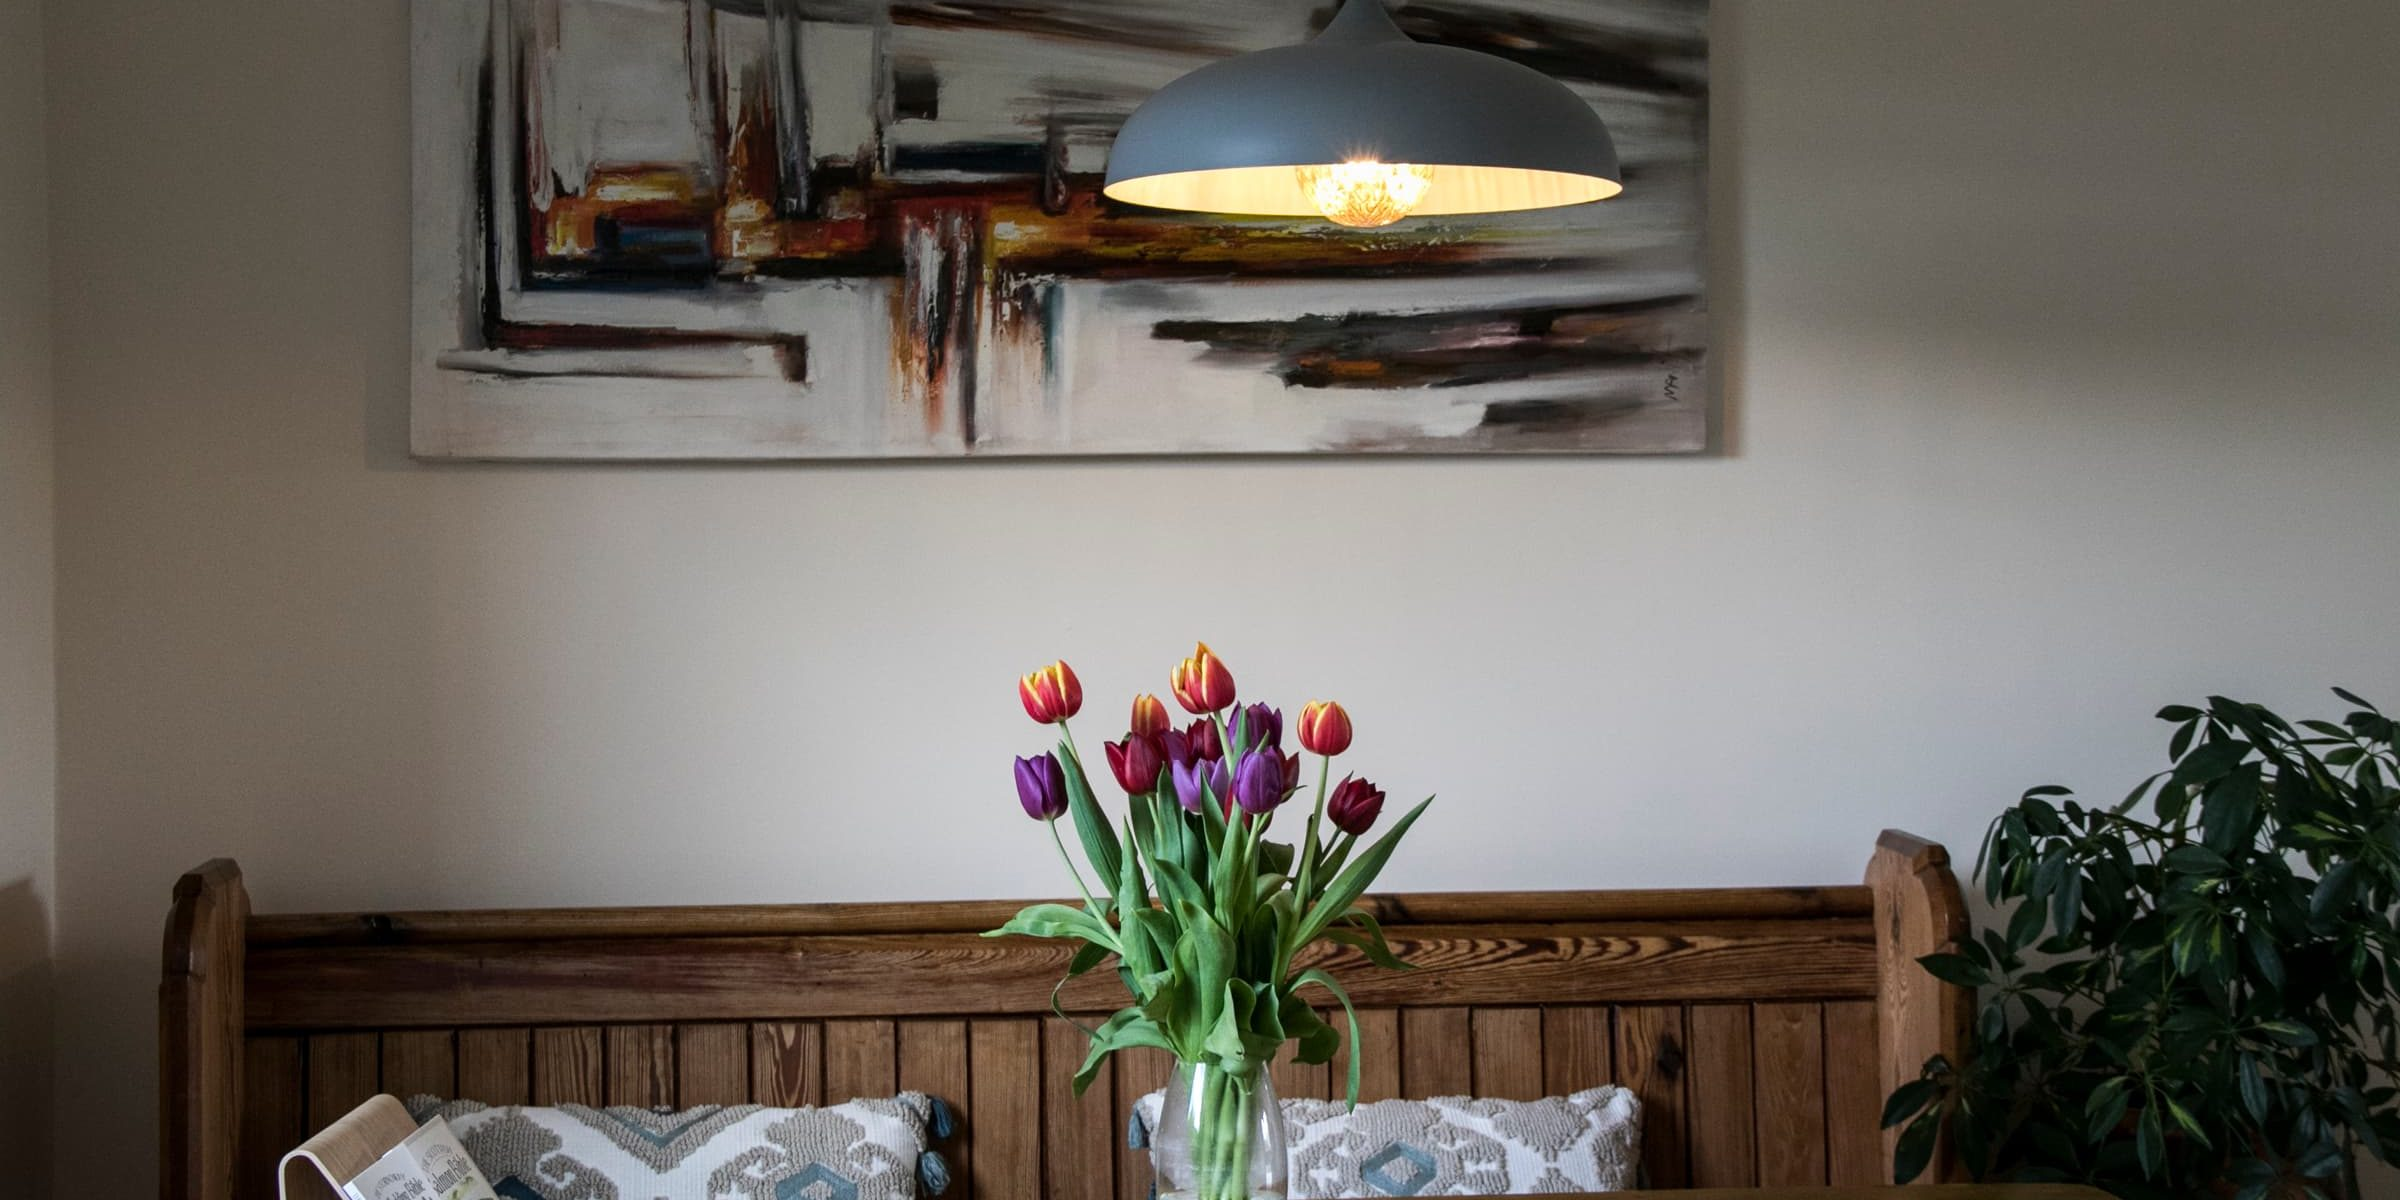 cozy looking dining area with bright flowers